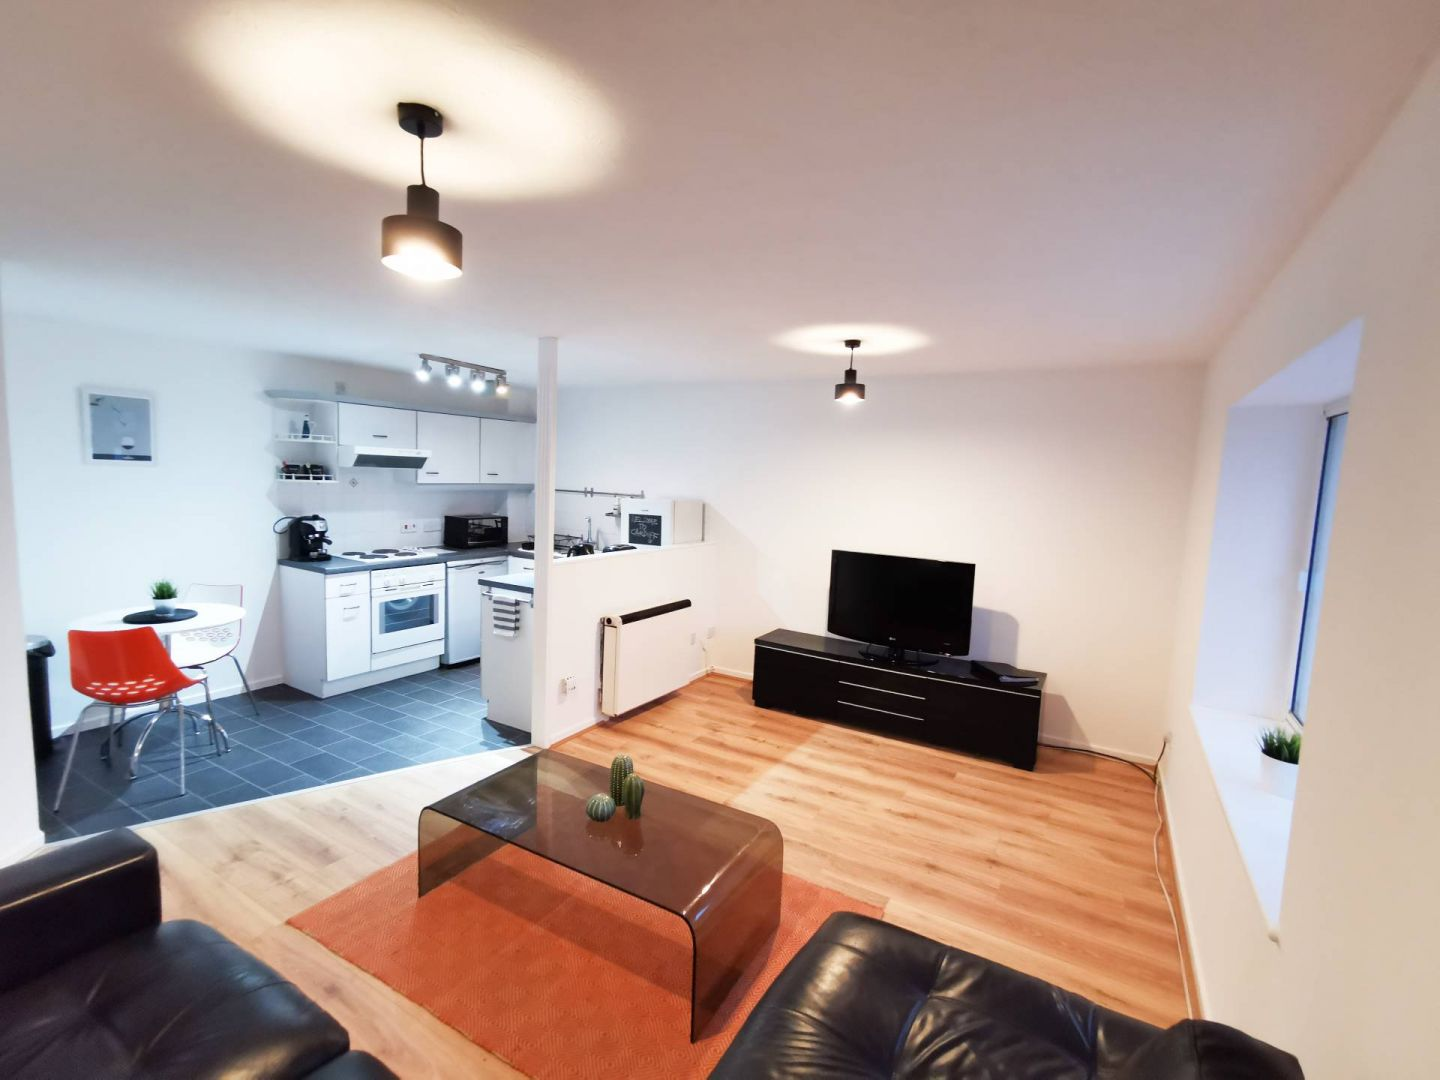 Cardiff Bay Apartment, Cardiff CF11 7TQ